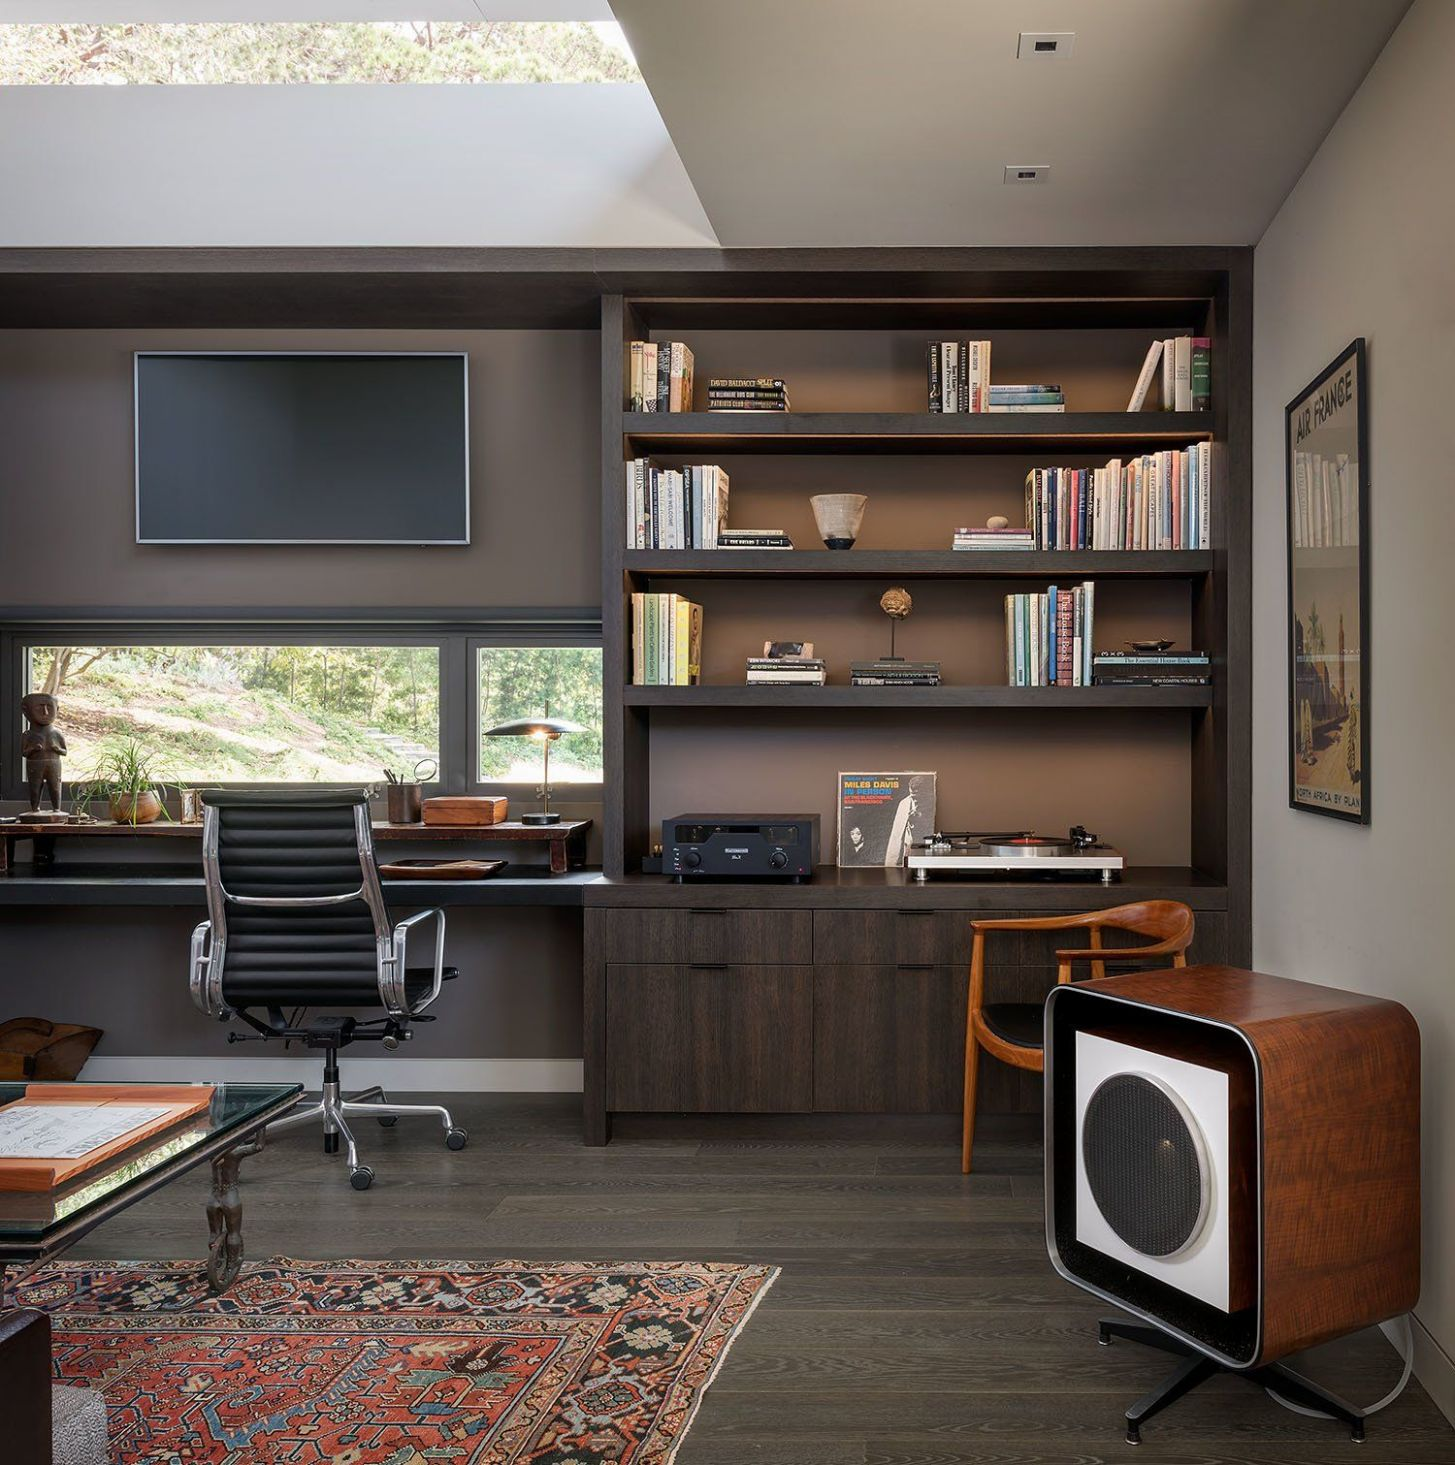 11 Home Office Designs & Decorating Ideas (With images) | Home ..